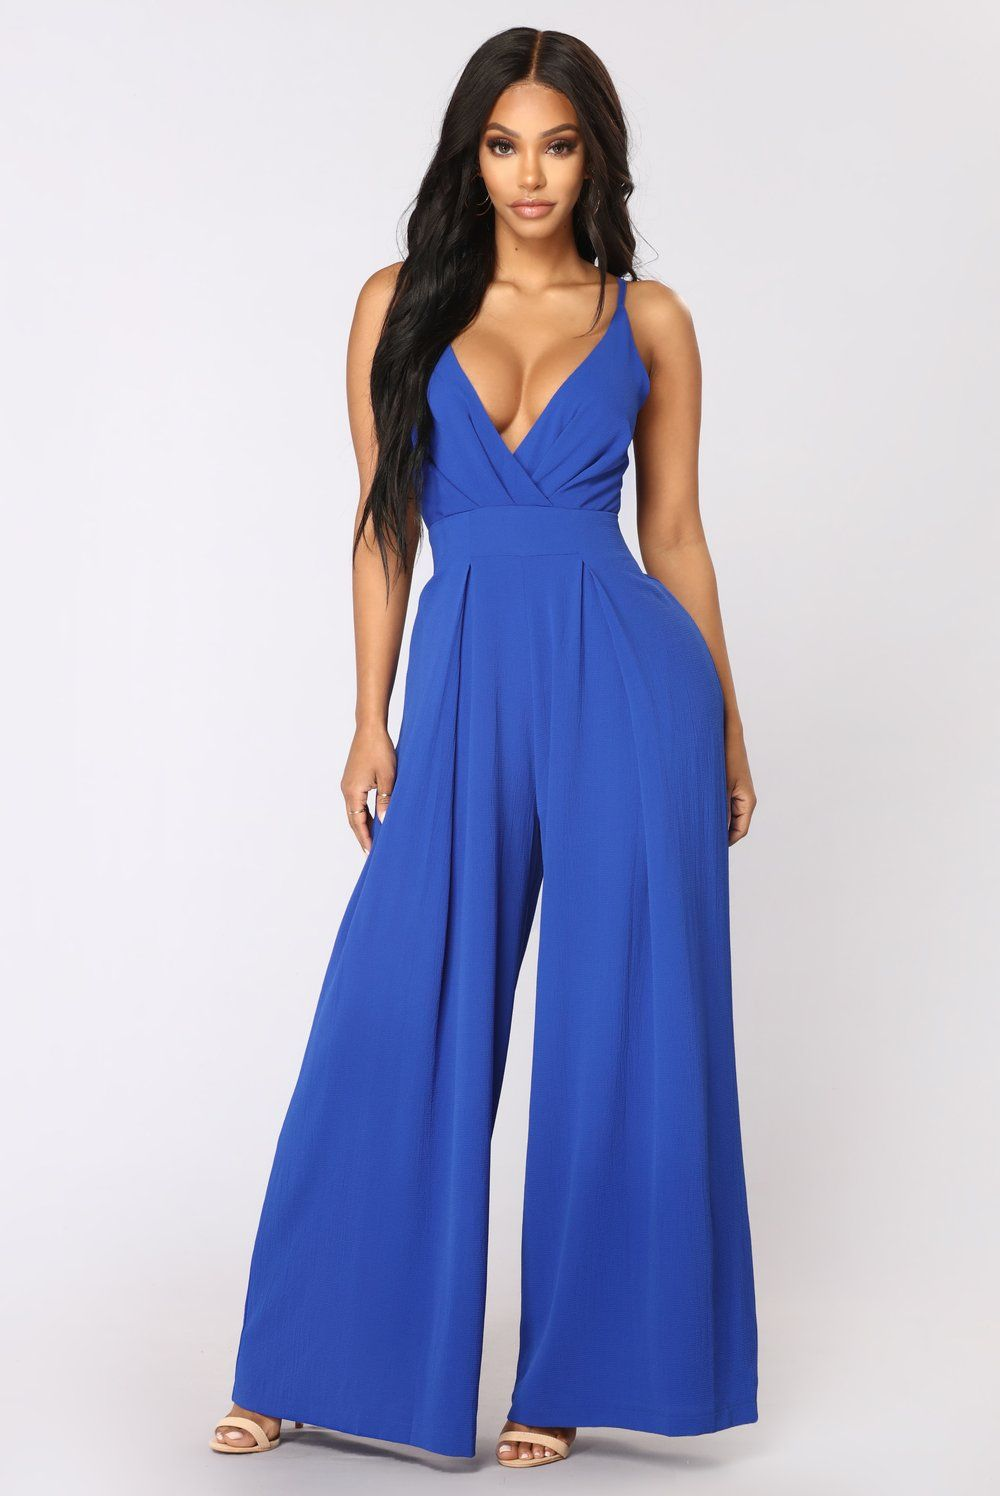 fe074f889a2 Strike A Pose Tie Jumpsuit - Royal